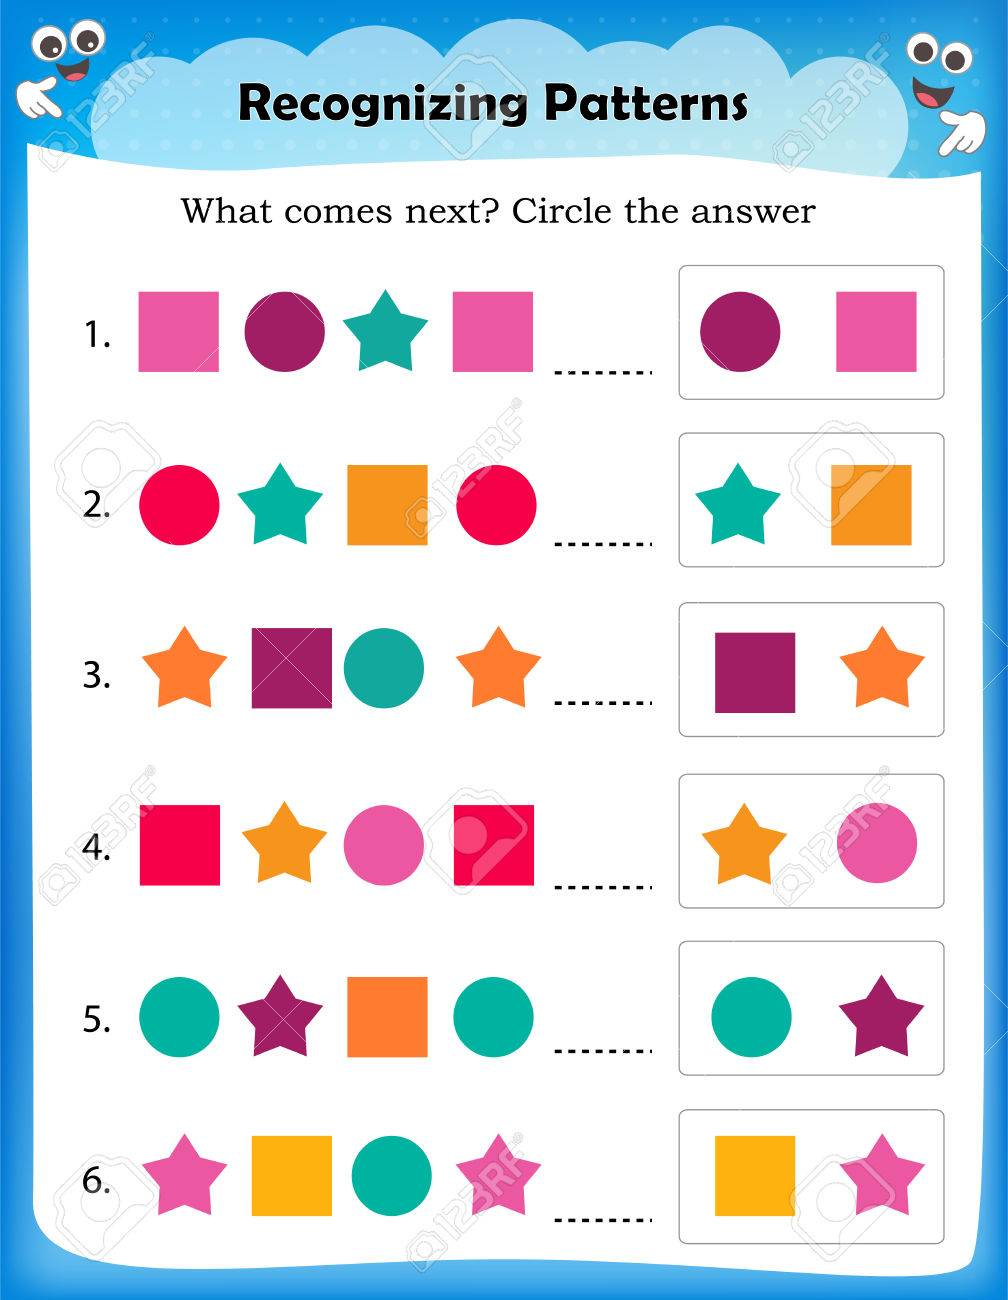 Worksheet Understanding Patterns   Complete Pattern With Correct ...